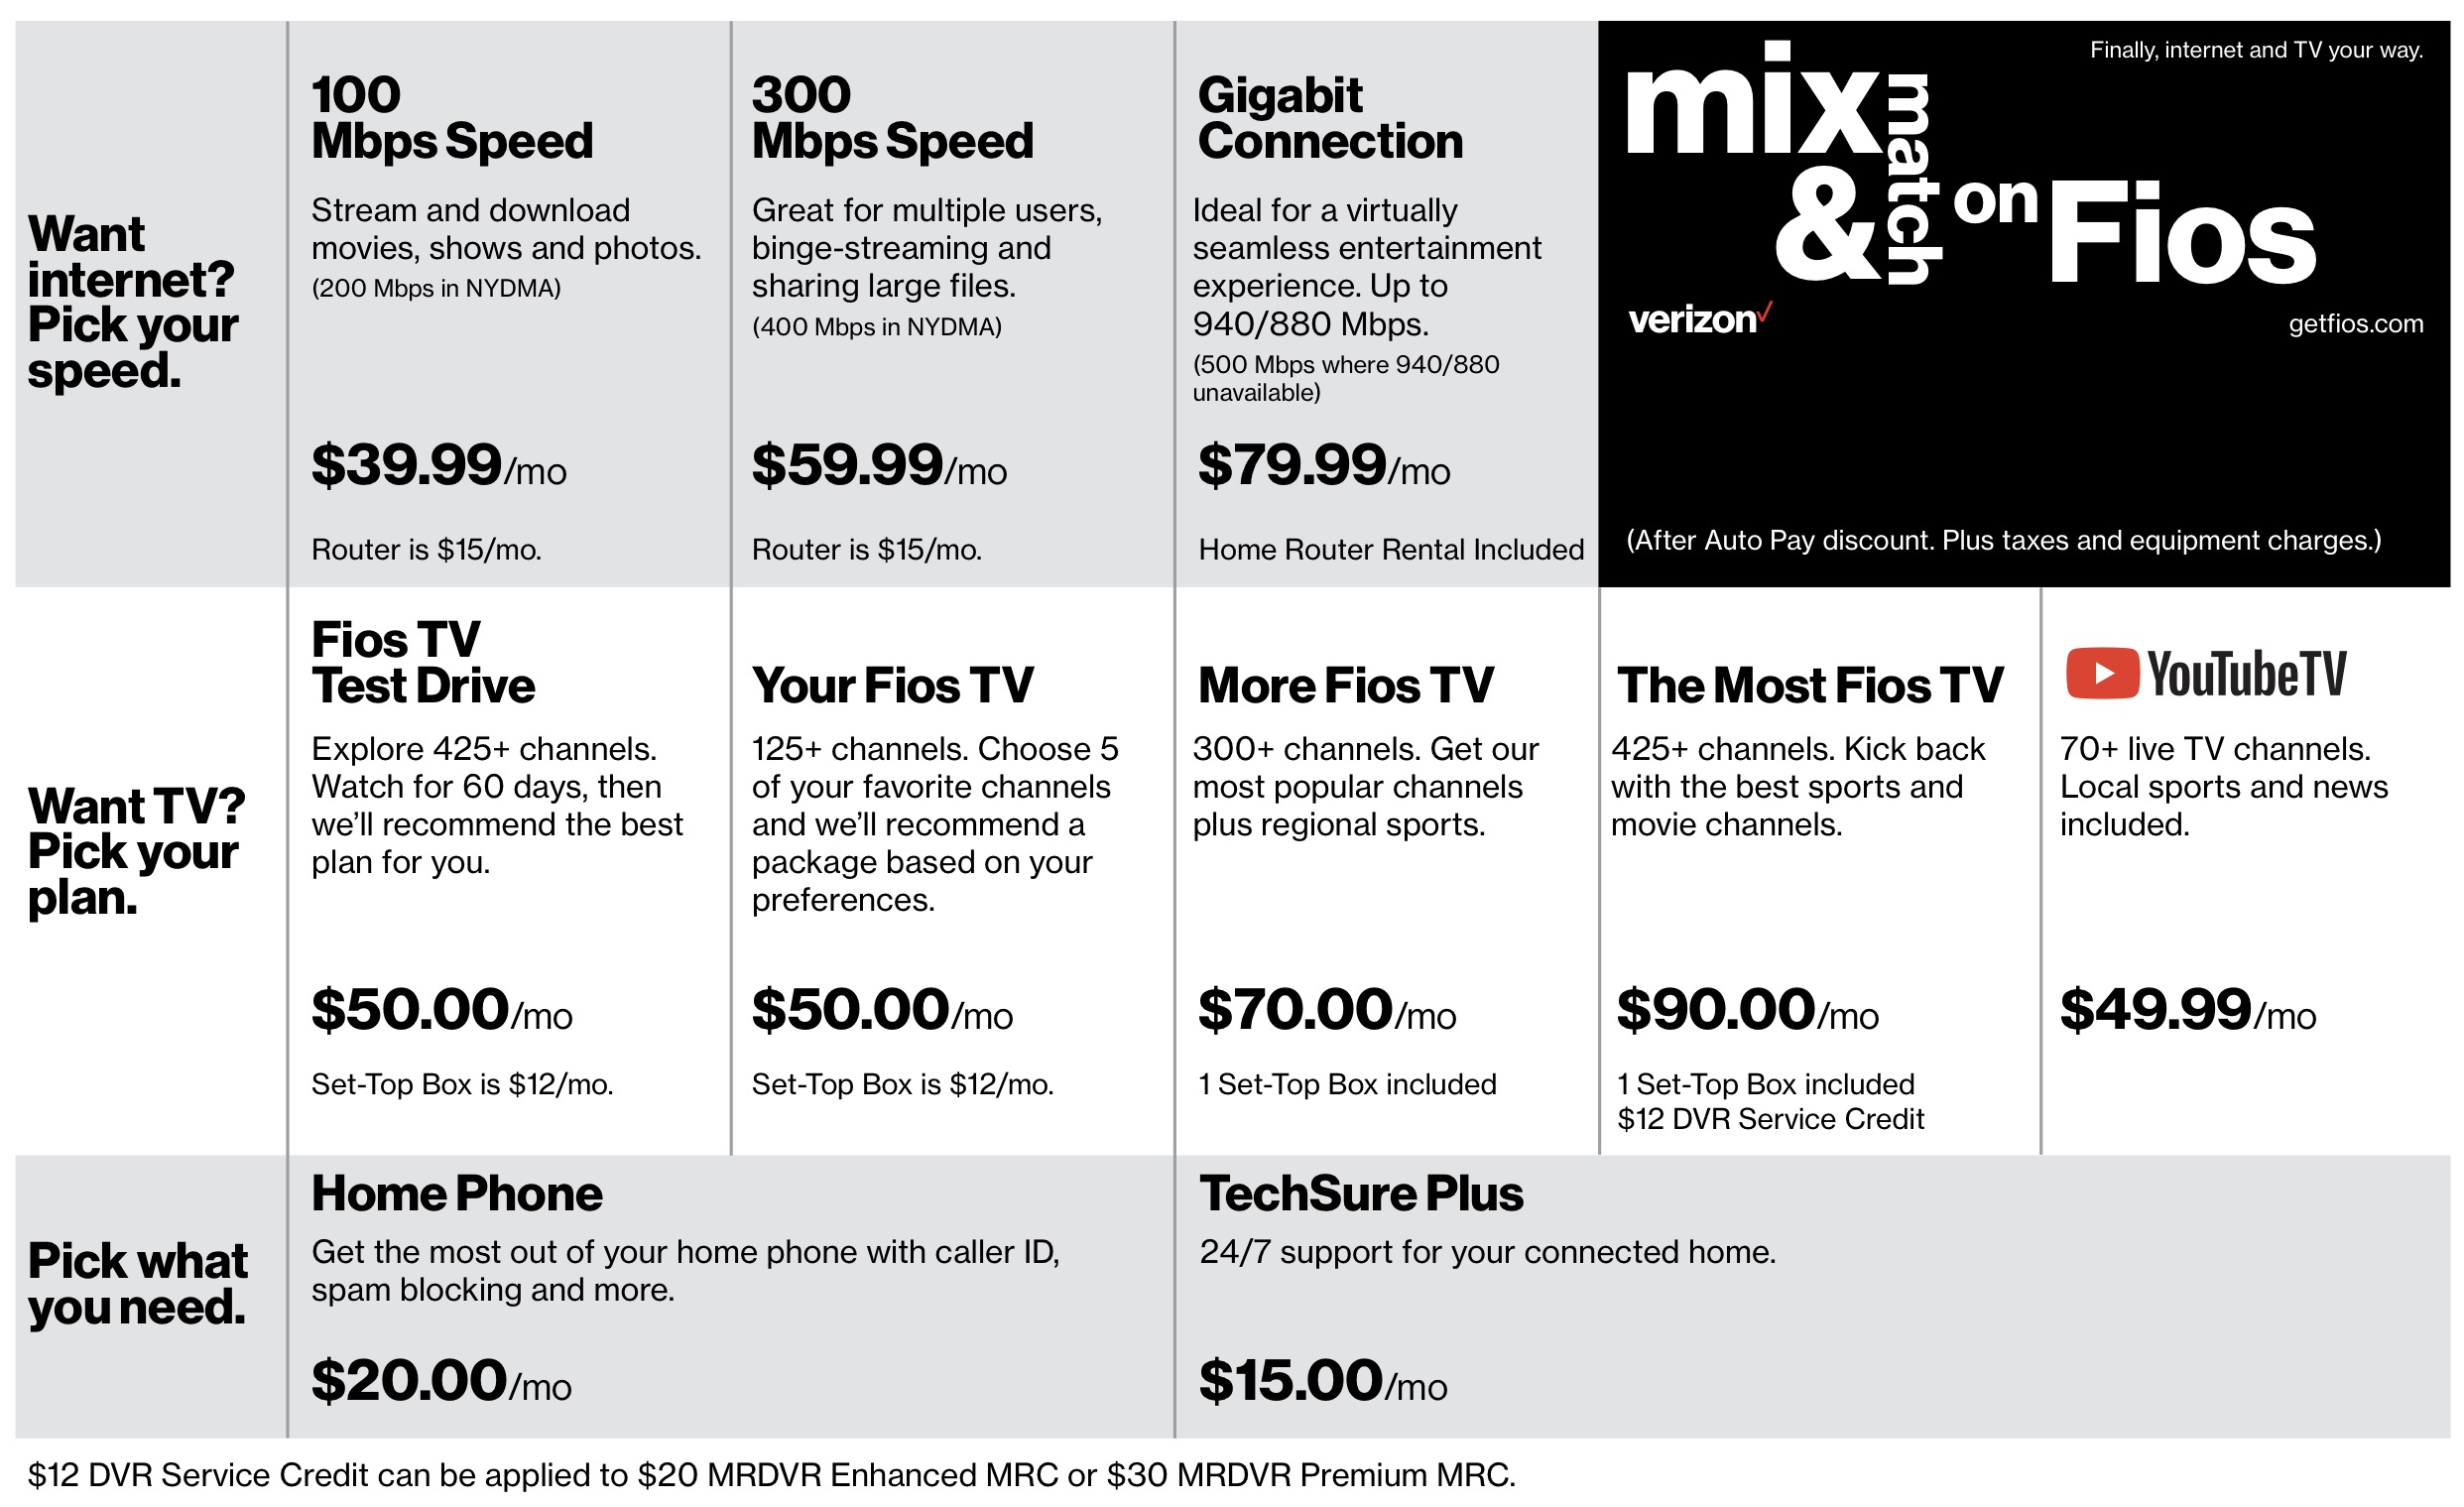 Verizon S Great Fios Offer To Me Pay 50 Extra For Slower Internet Ars Technica